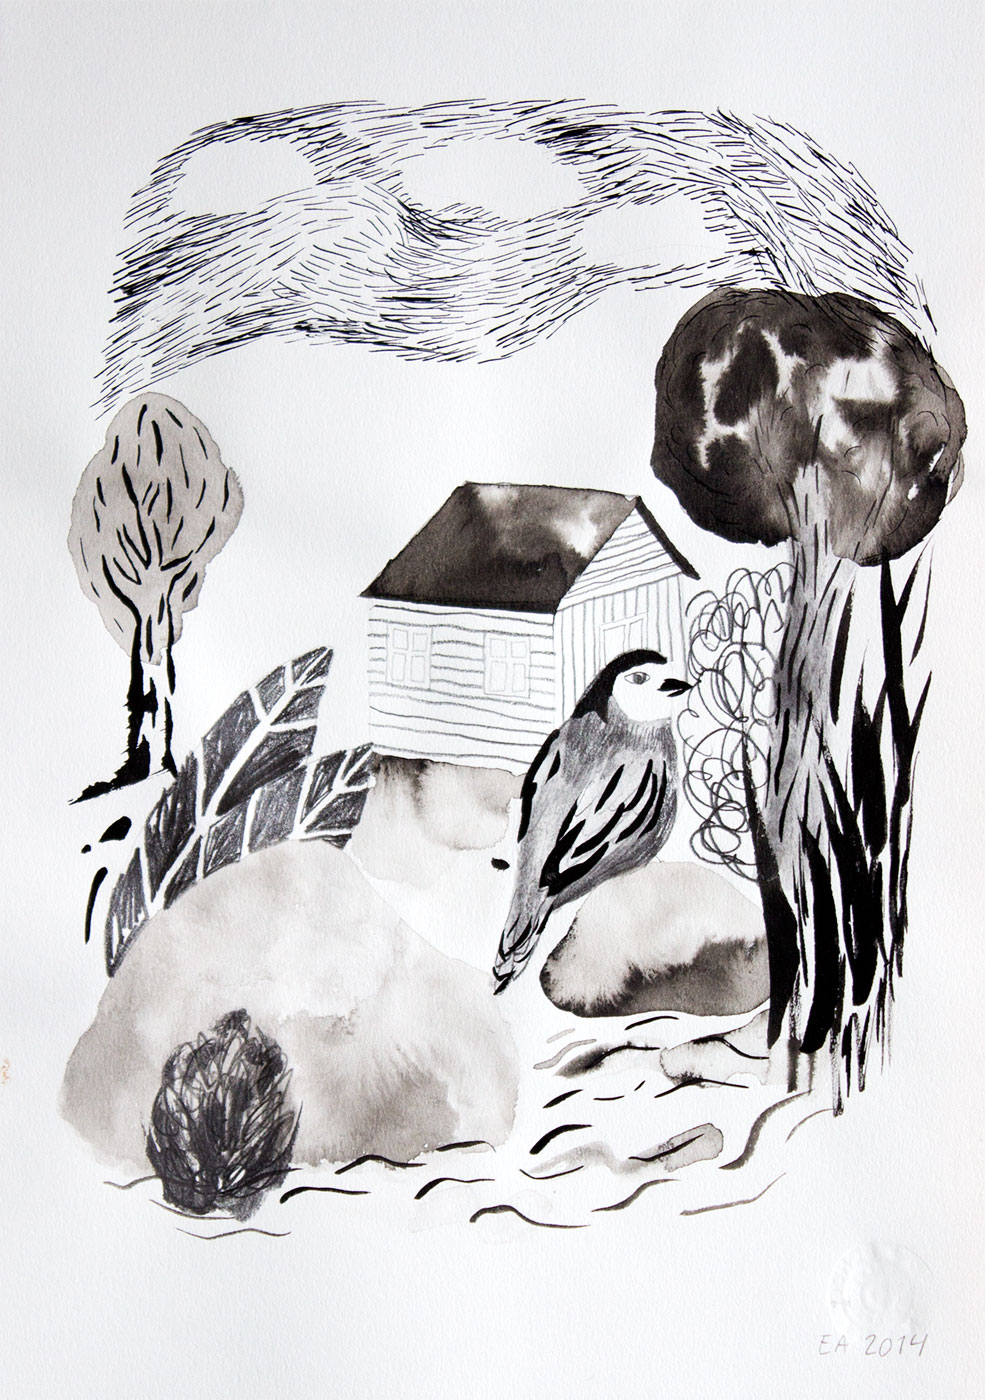 drawings, gouache, watercolors, geometric, landscape, architecture, botany, nature, patterns, pets, black, grey, white, artliner, paper, watercolor, beautiful, birds, decorative, flowers, interior, interior-design, scenery, water, Buy original high quality art. Paintings, drawings, limited edition prints & posters by talented artists.